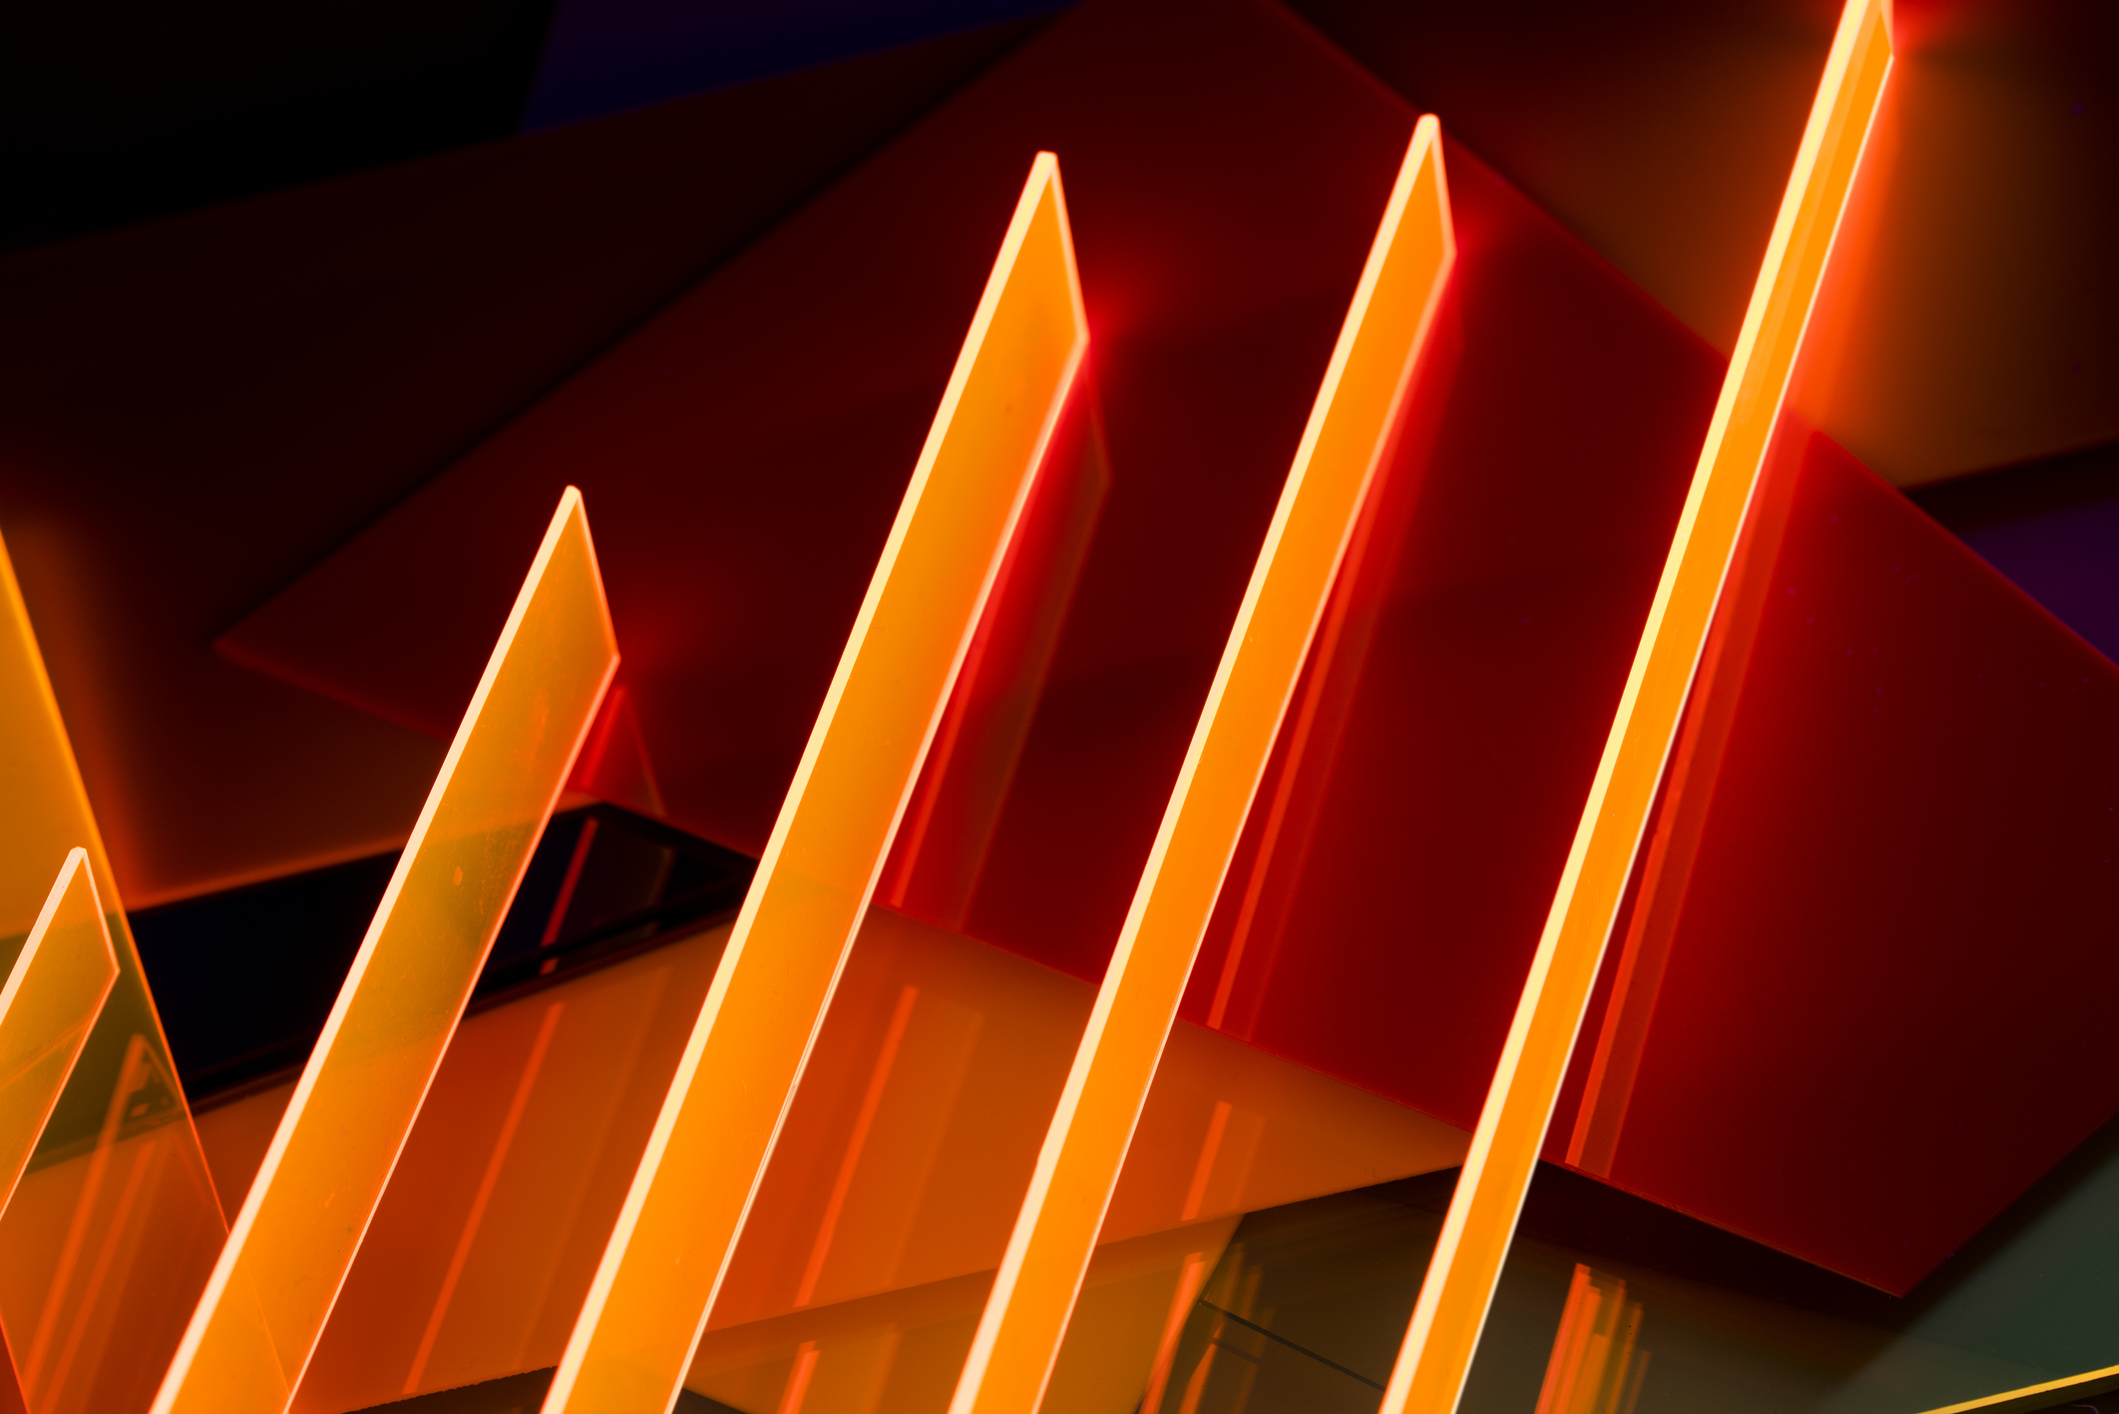 Abstract orange acrylic structures